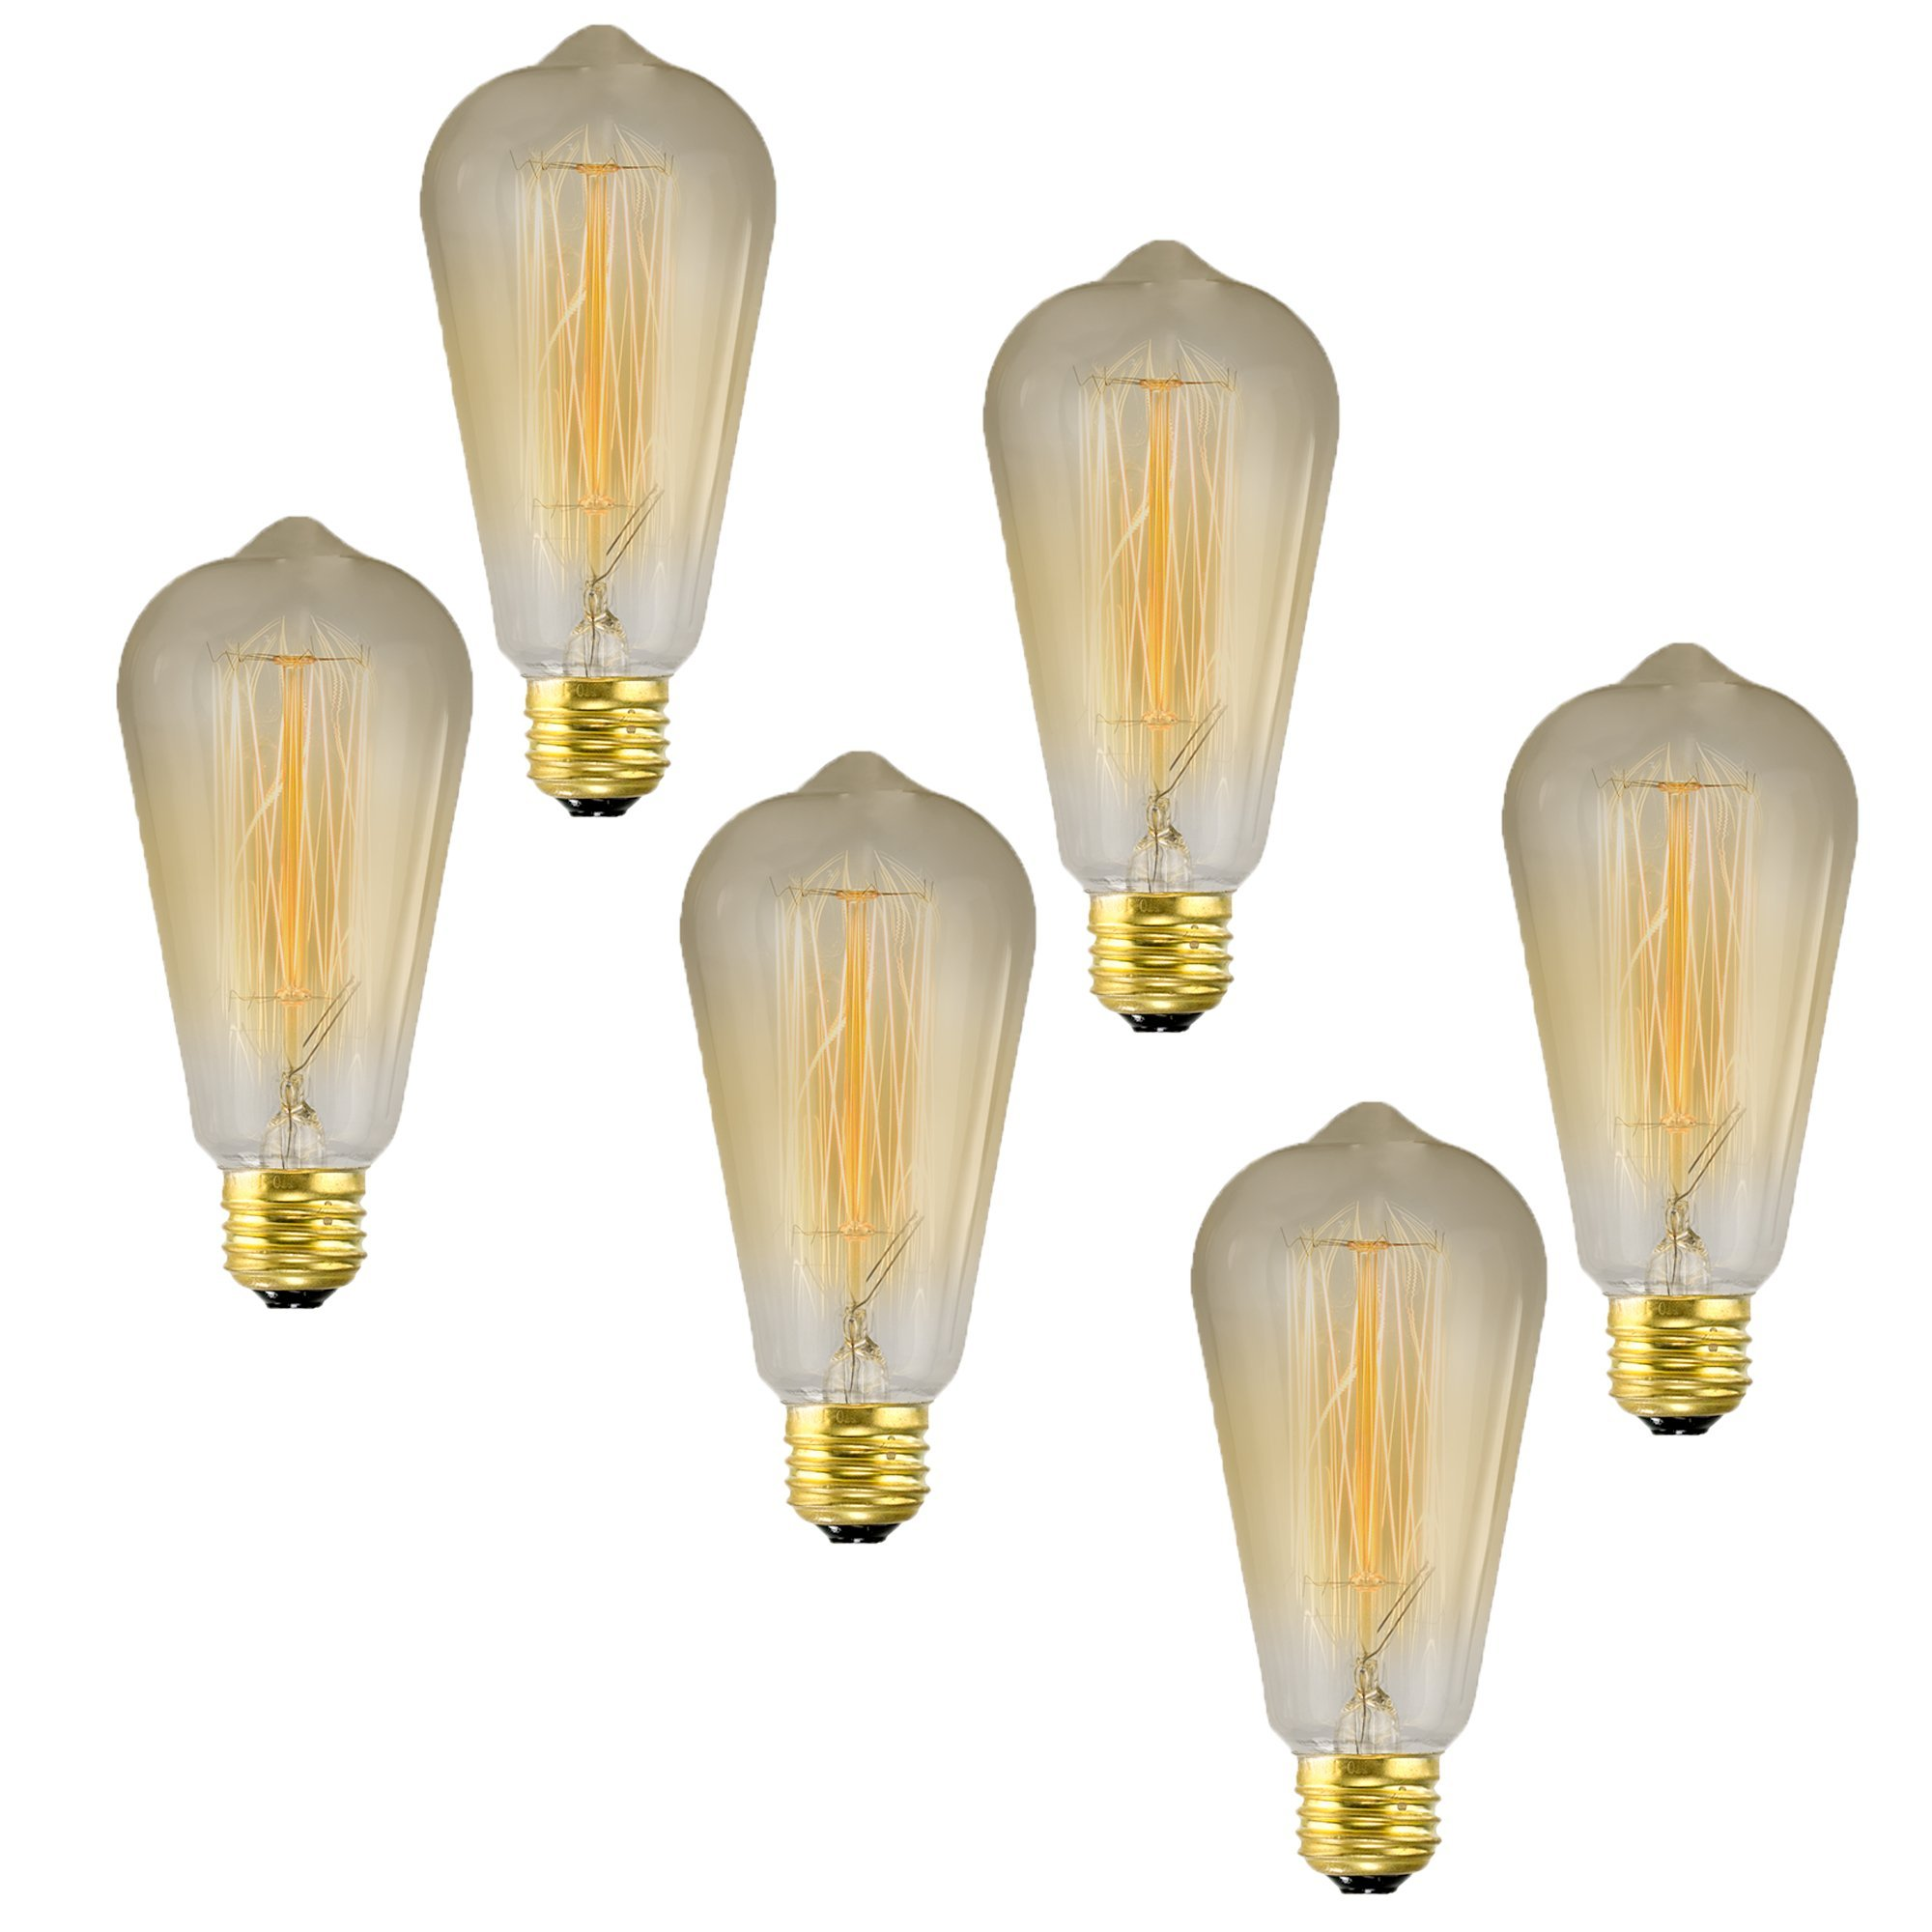 Edison Bulb 6 Pack - ST64 - Squirrel Cage Filament - Dimmable, Edison Style Vintage Light Bulbs - 40 Watt